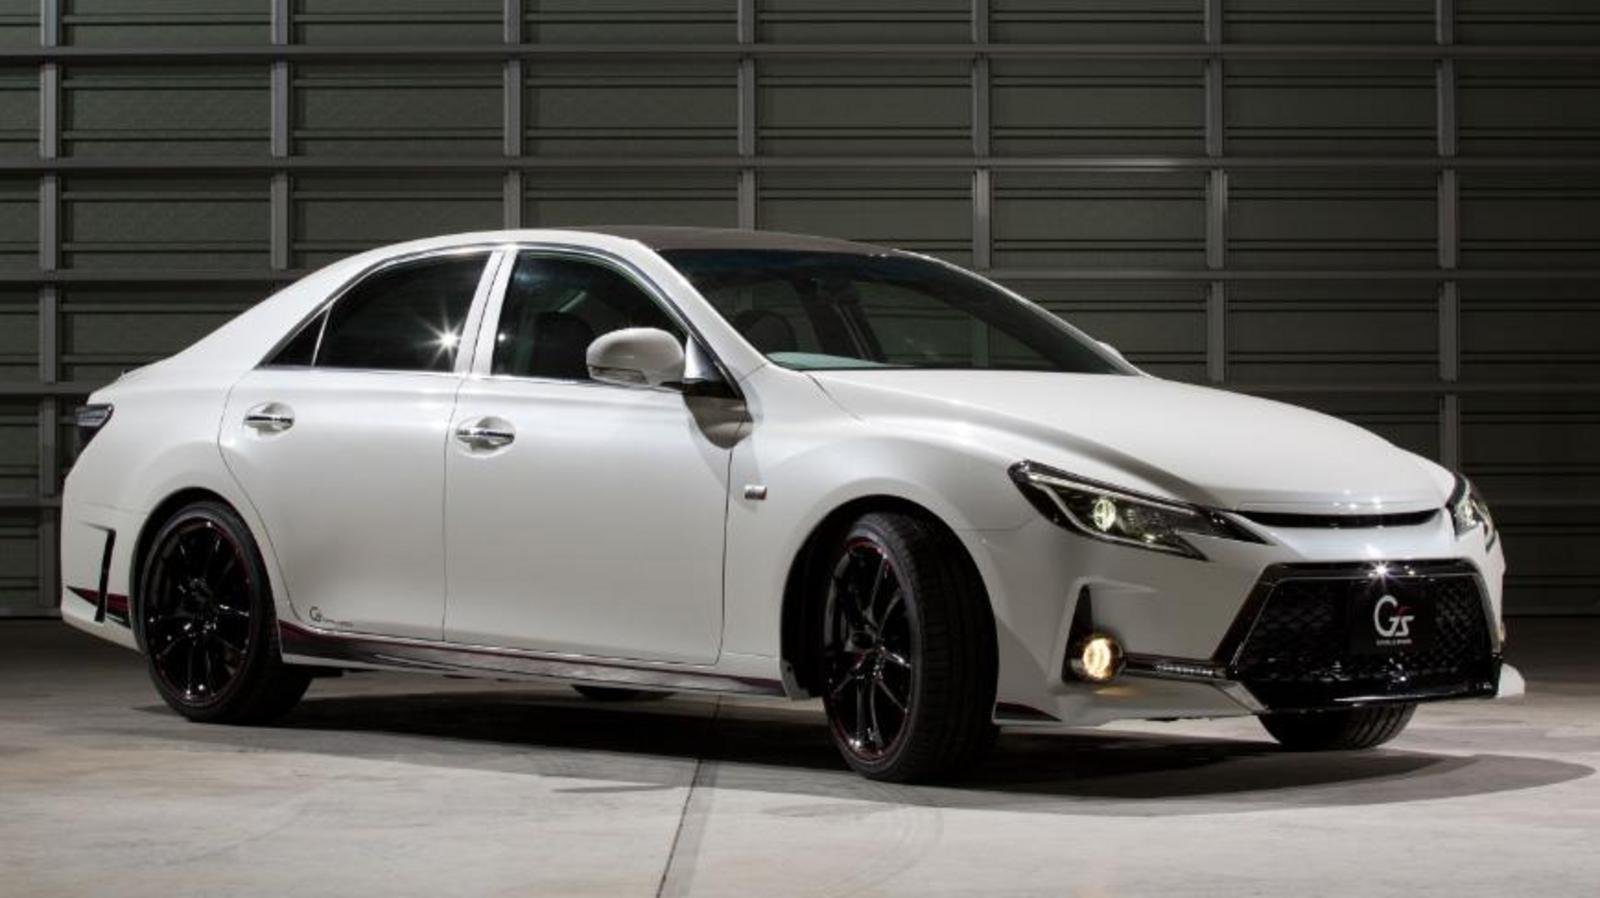 2013 toyota mark x g sports carbon roof concept review